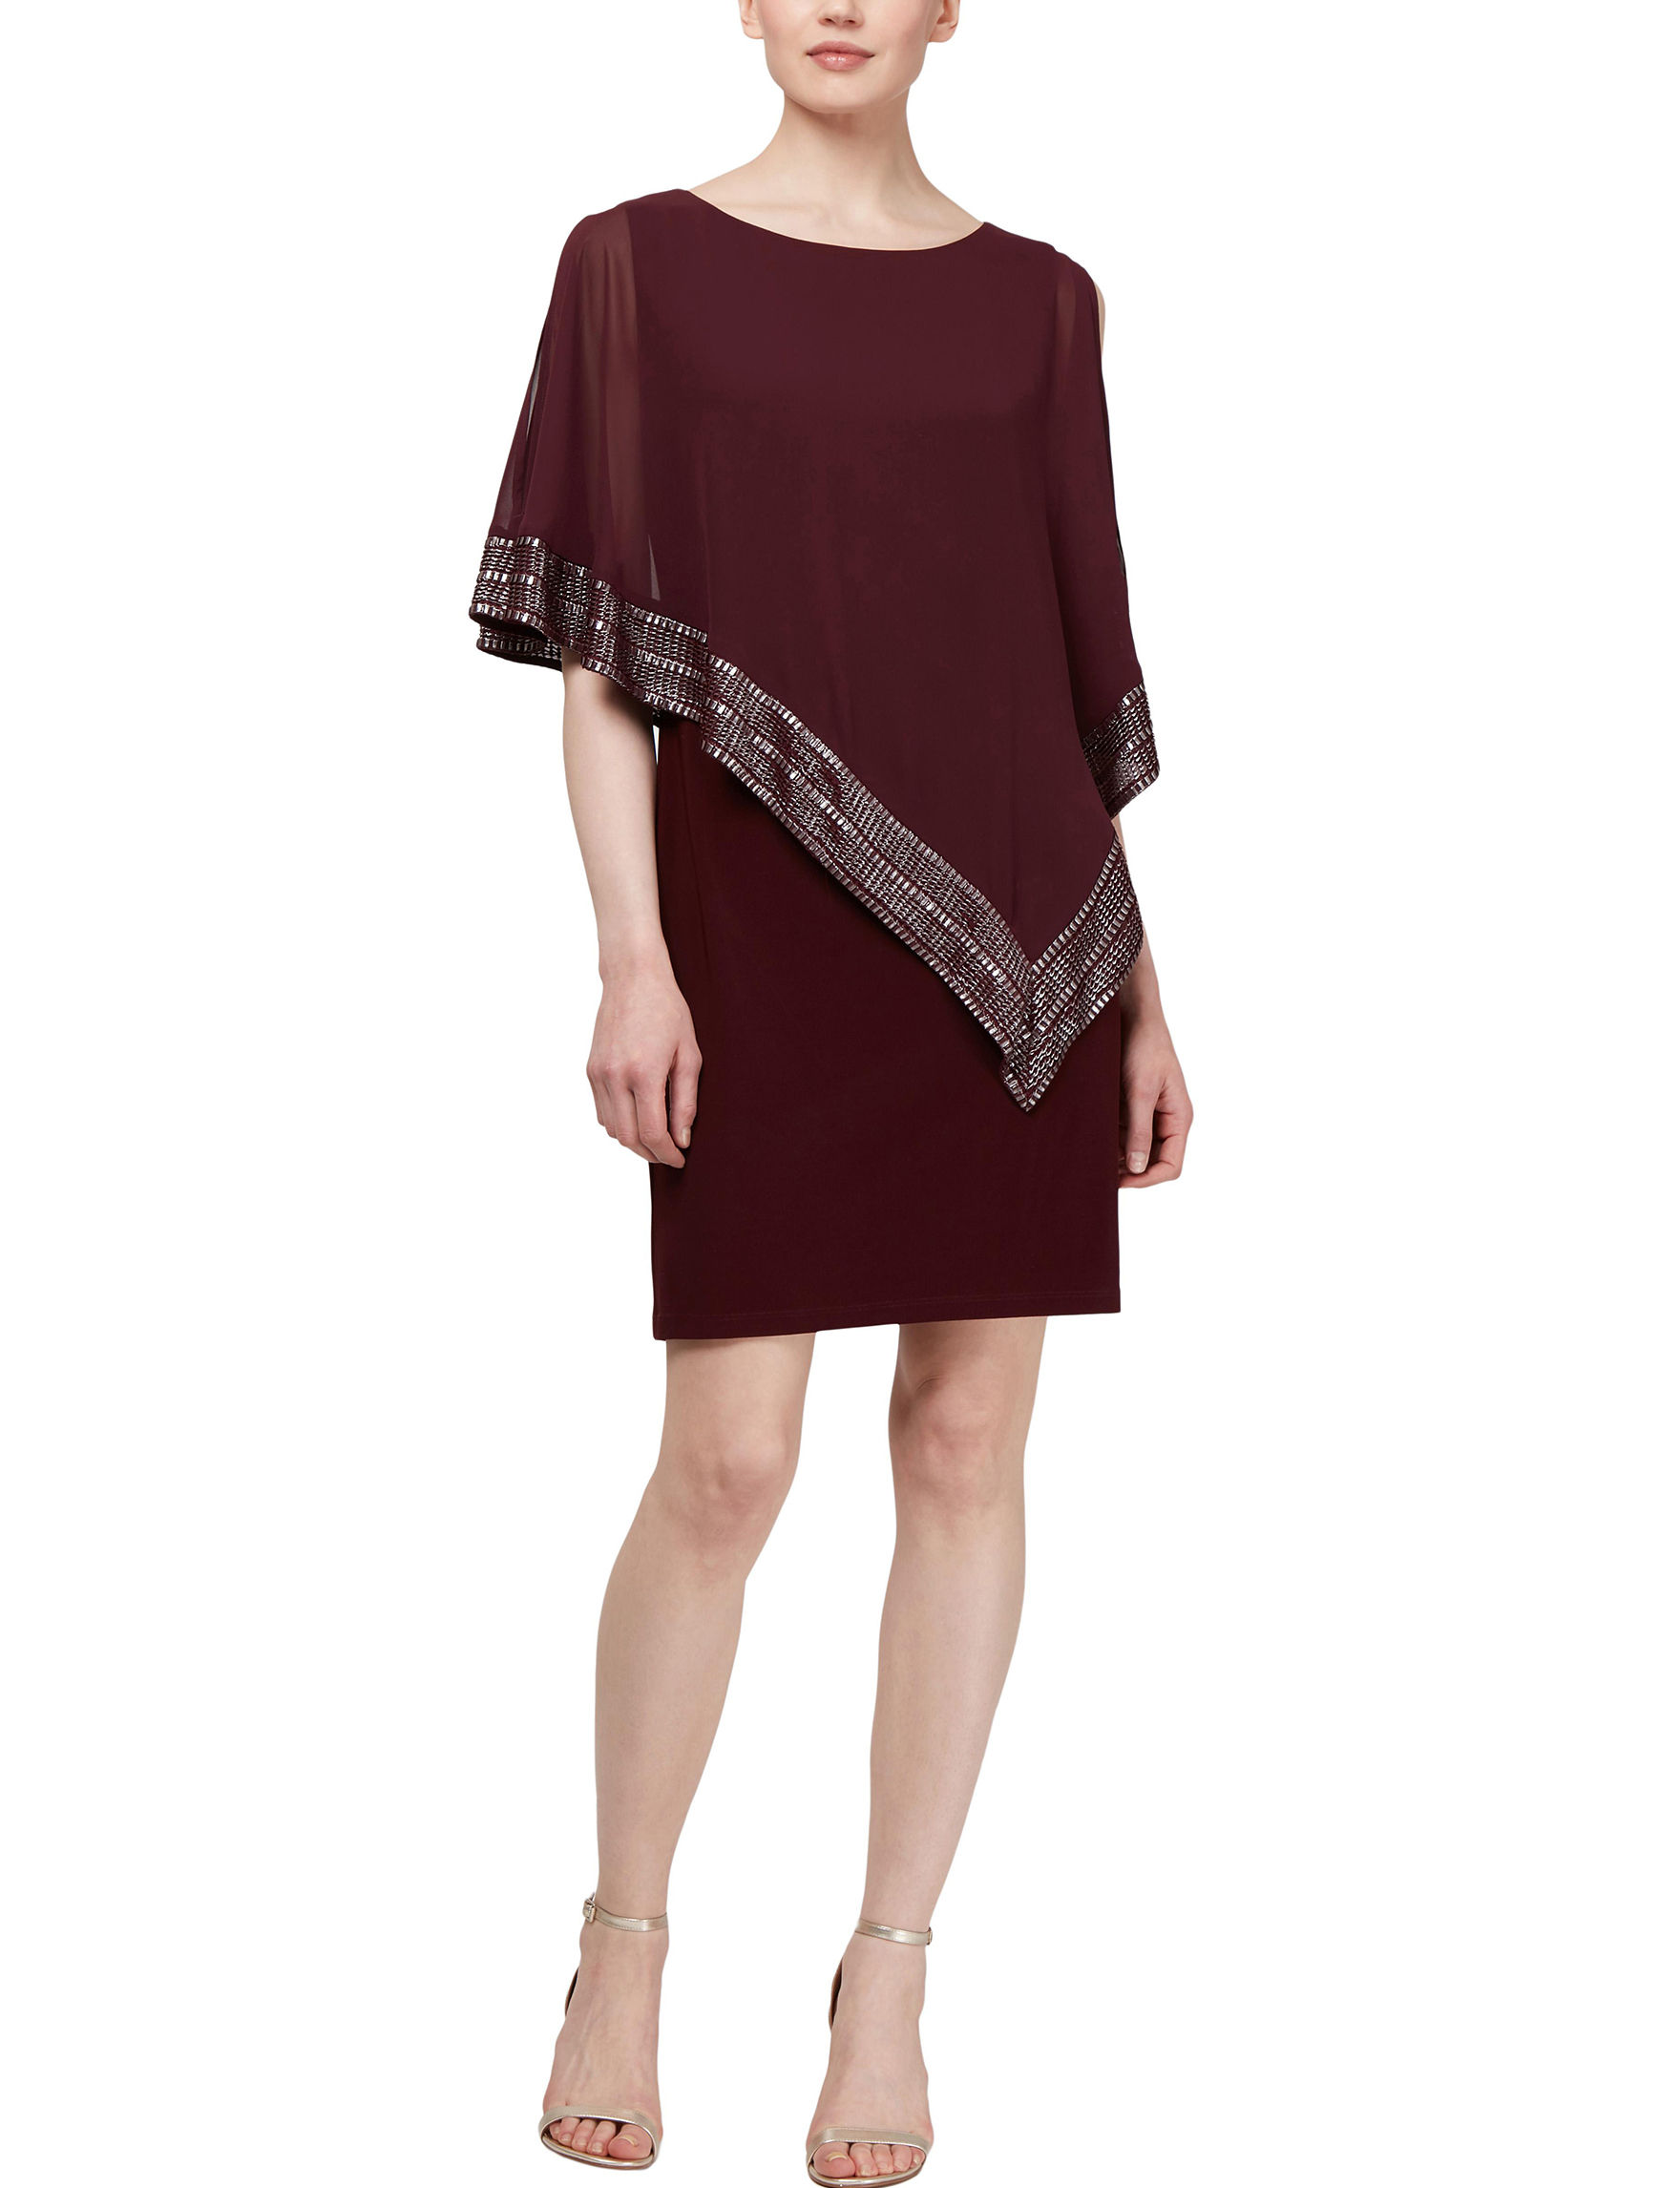 S.L. Fashions Burgundy Cocktail & Party Evening & Formal Jacket Dresses